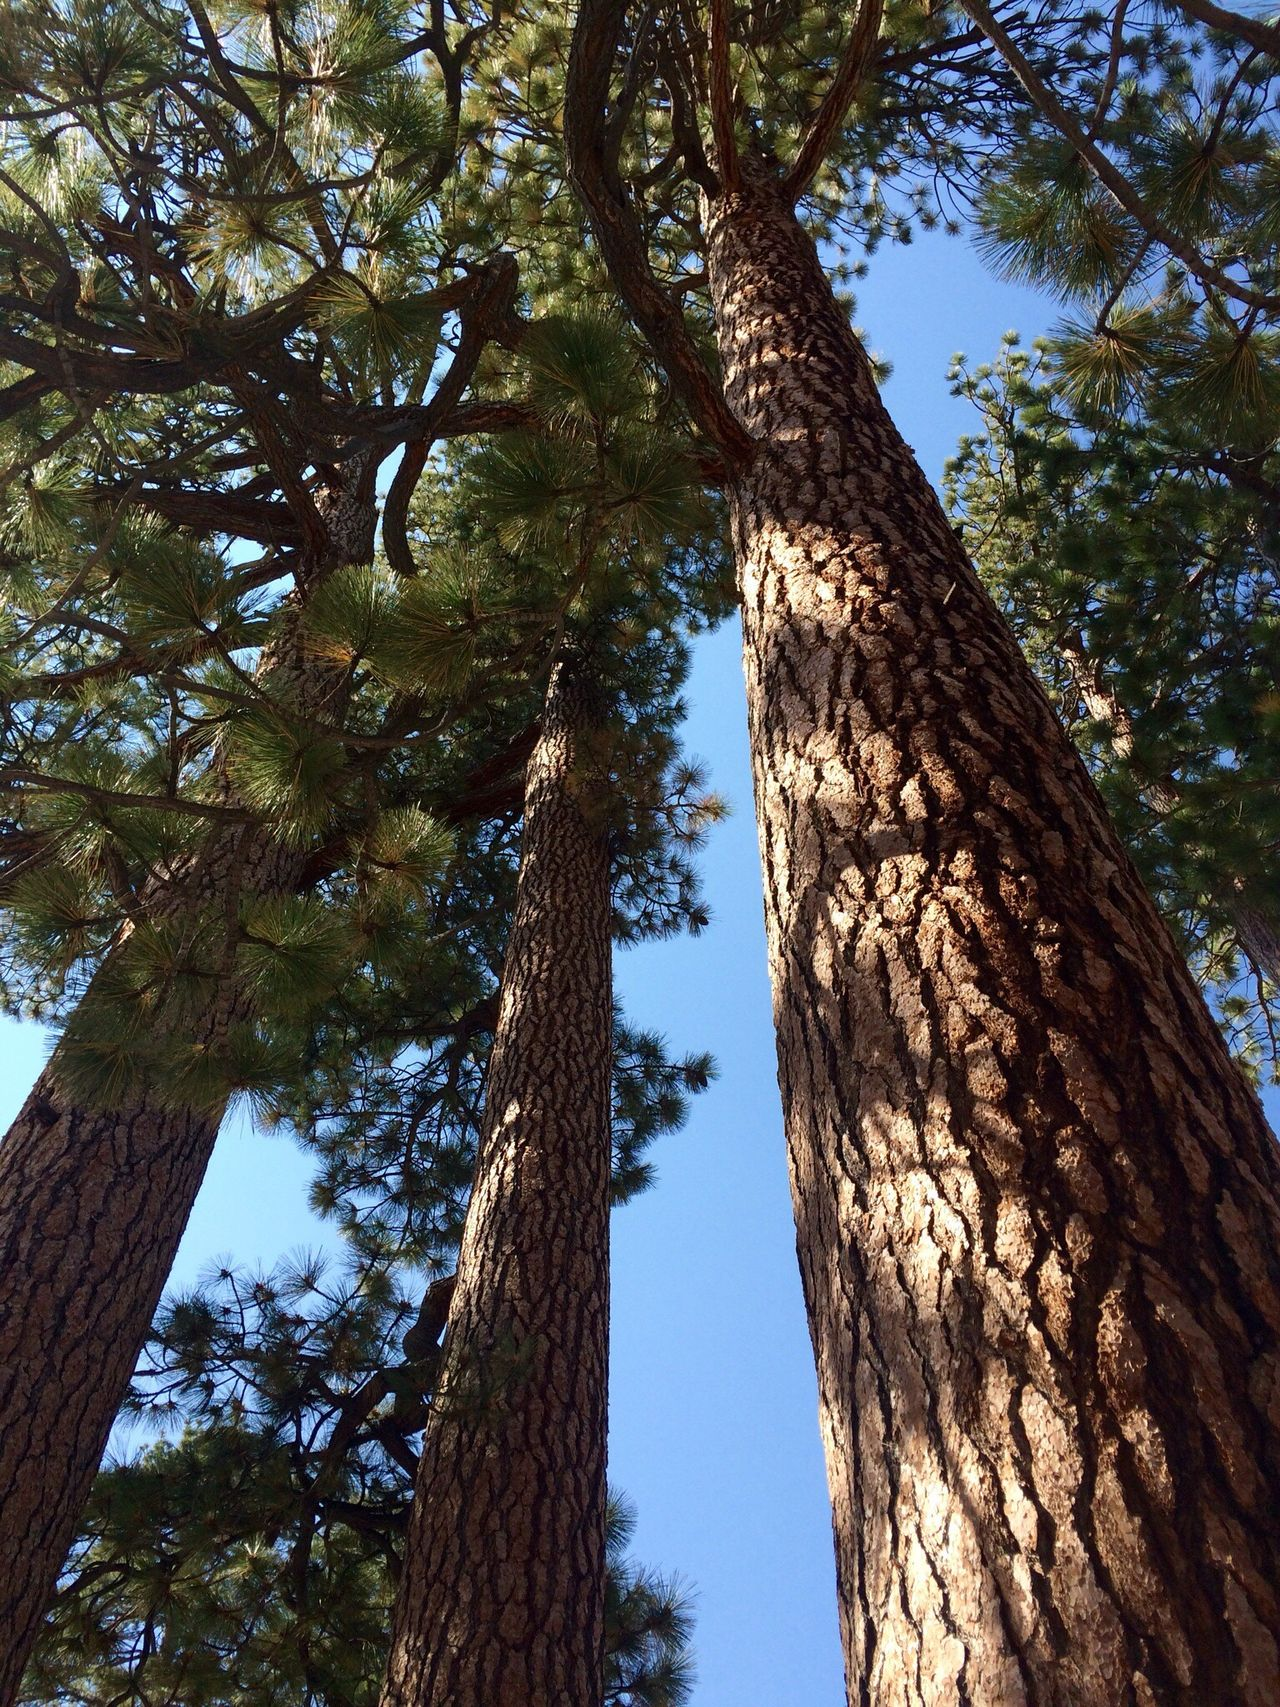 Hike Tree Low Angle View Tree Trunk Nature Growth No People Outdoors Day Sky Beauty In Nature Pine